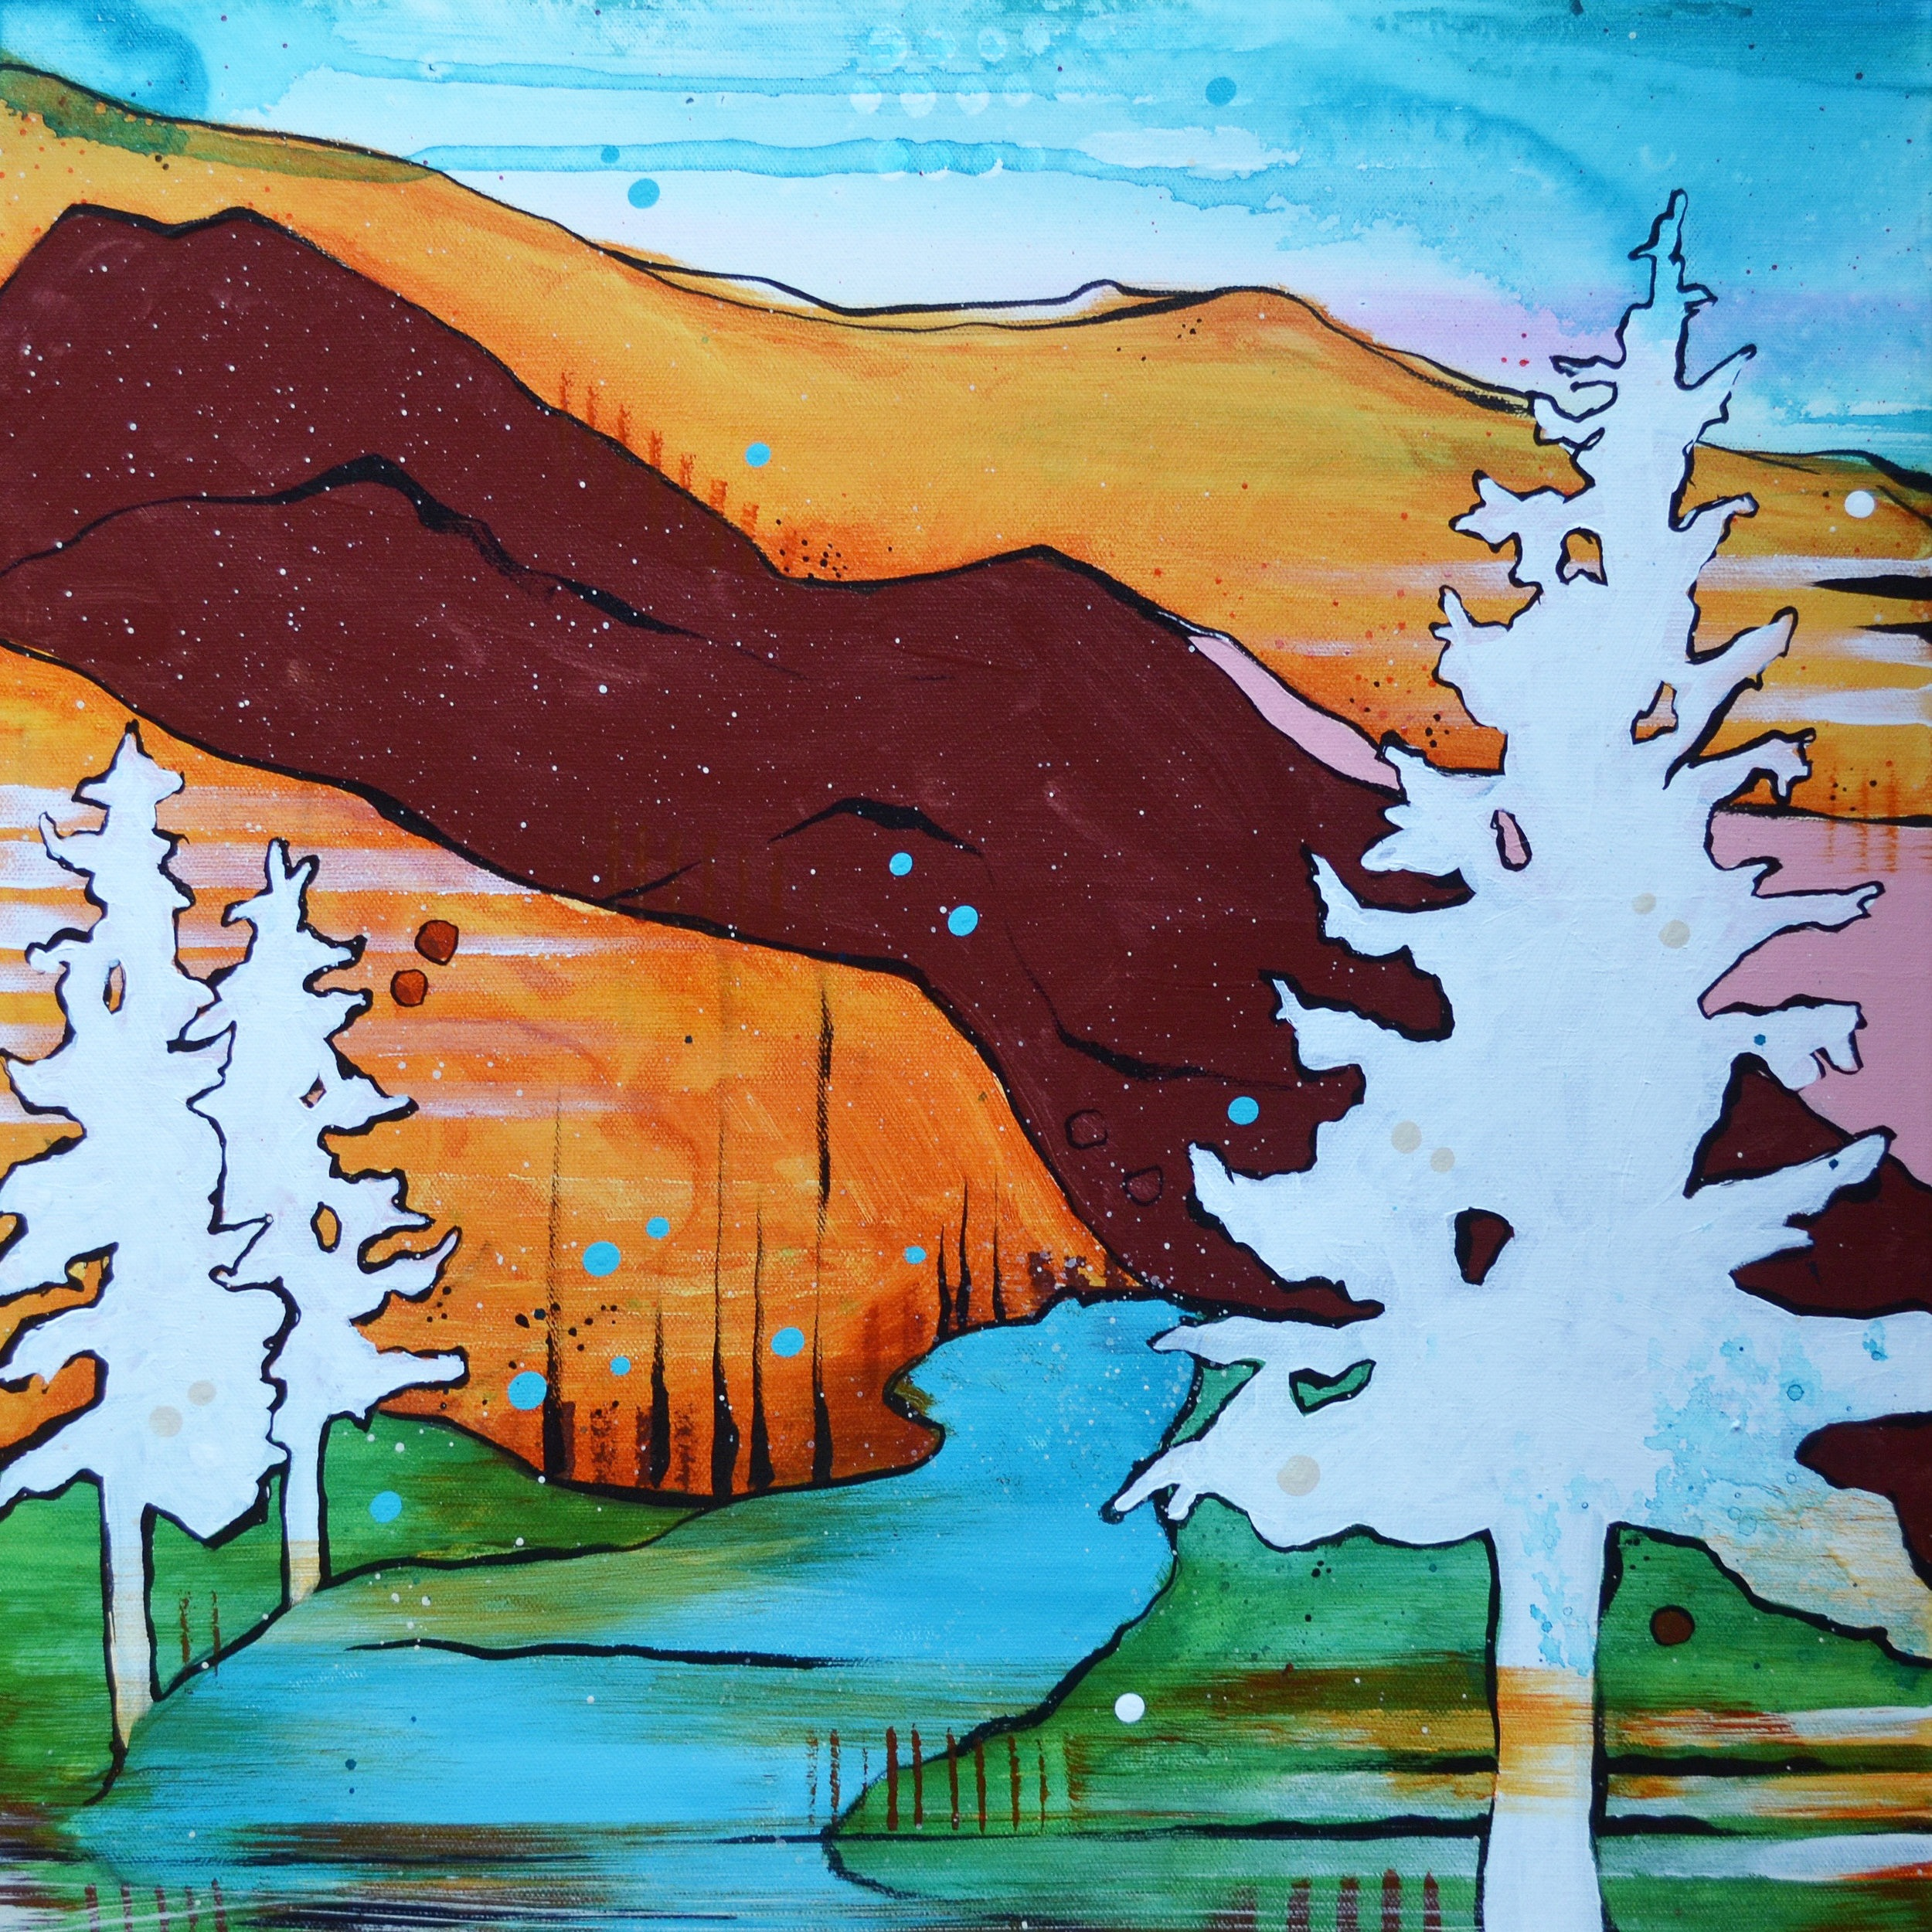 Pine Creek  | 20 x 20 inch acrylic on canvas